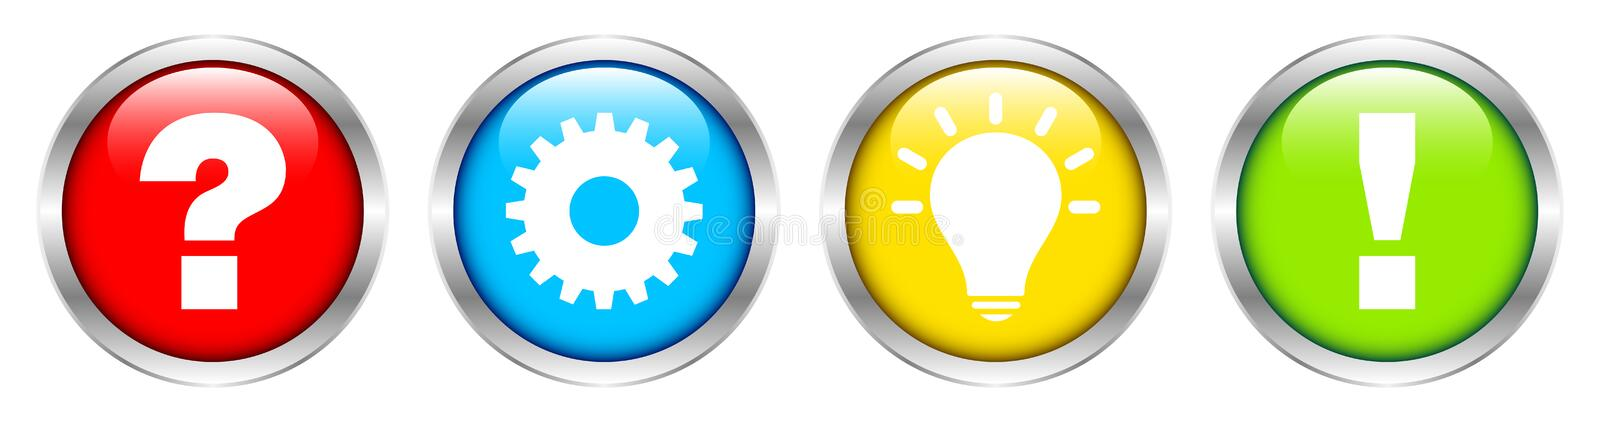 Set Of Four Silver Buttons Question Work Idea And Answer Color stock illustration